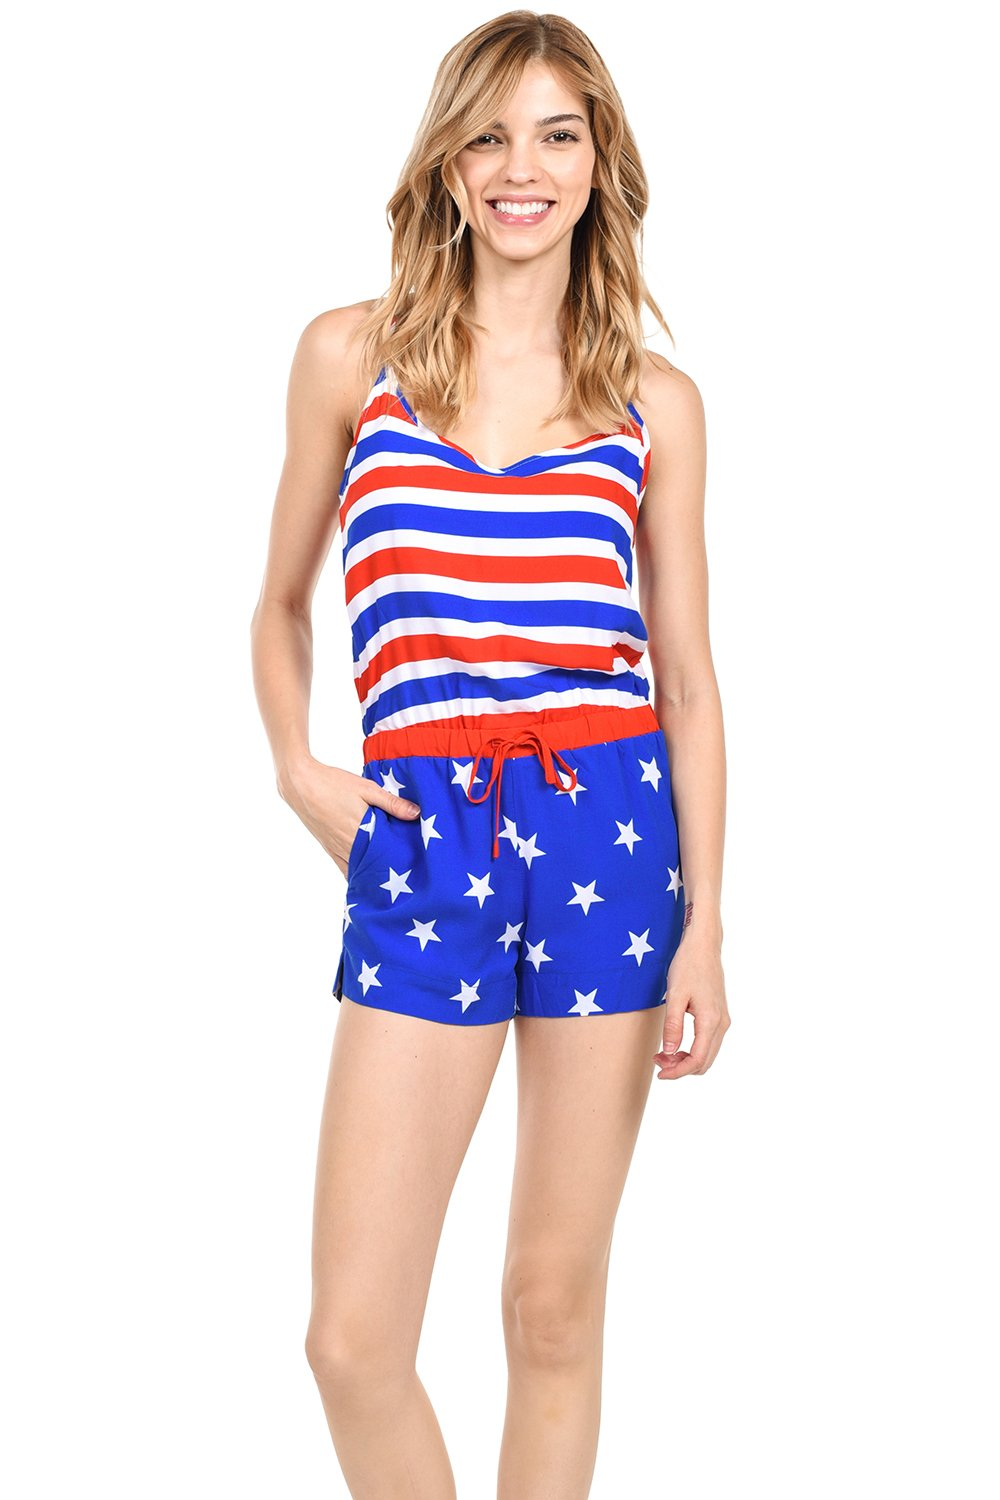 Tipsy Elves Women's Patriotic American Flag Romper Dress